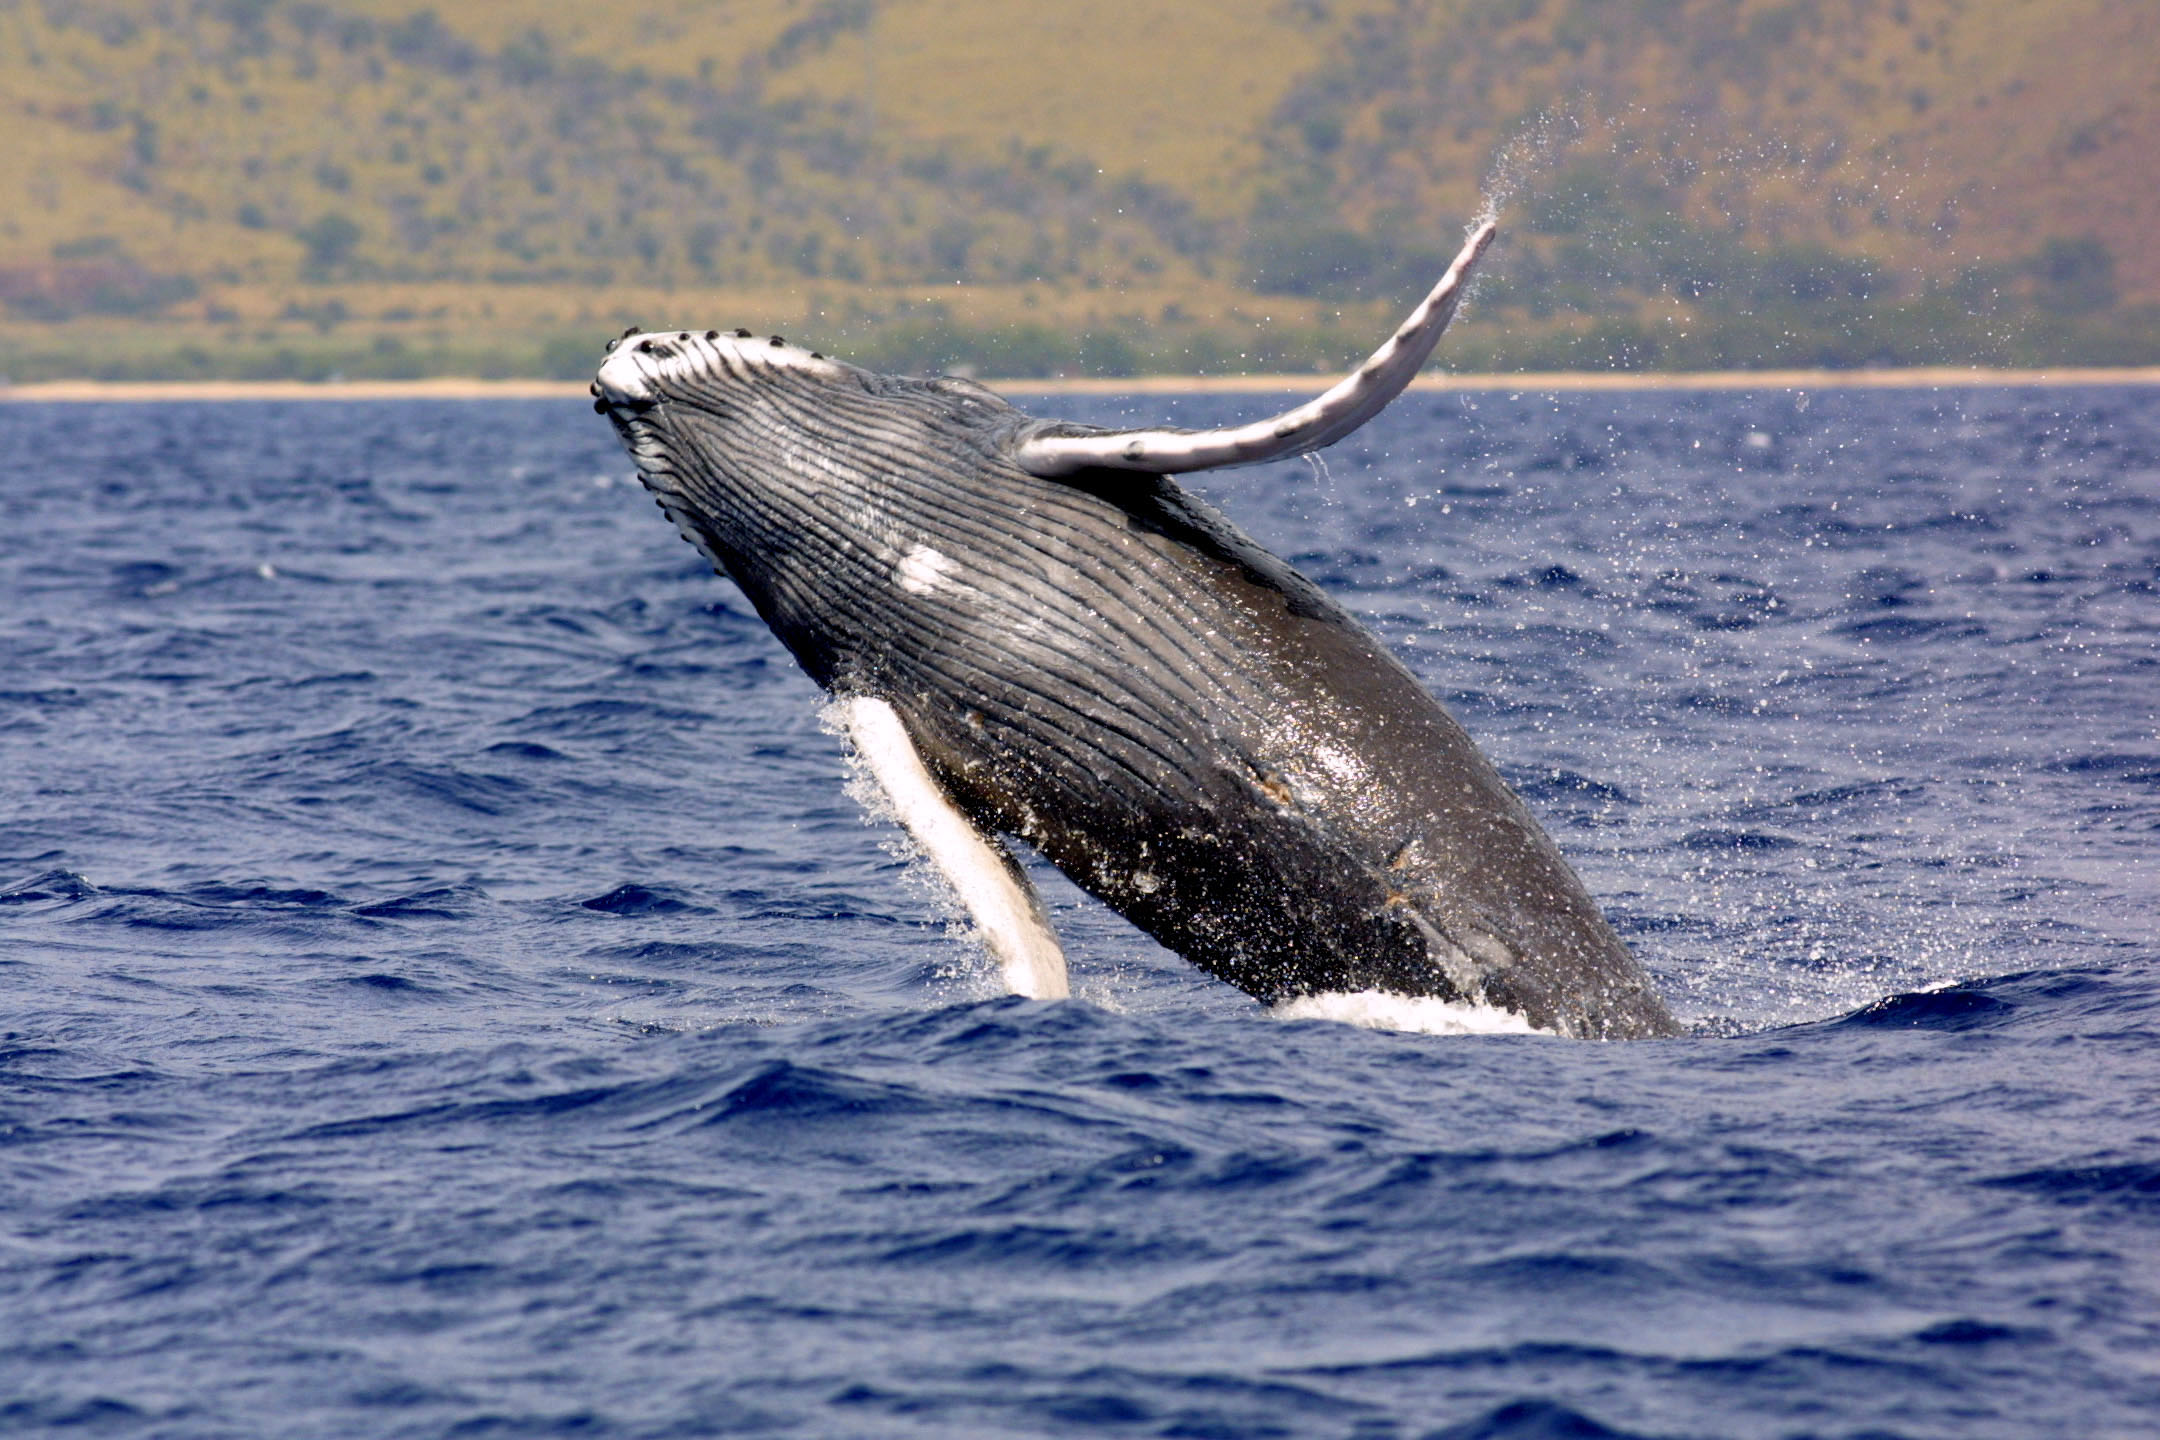 NOAA Wants Humpback Whales Off Endangered Species List